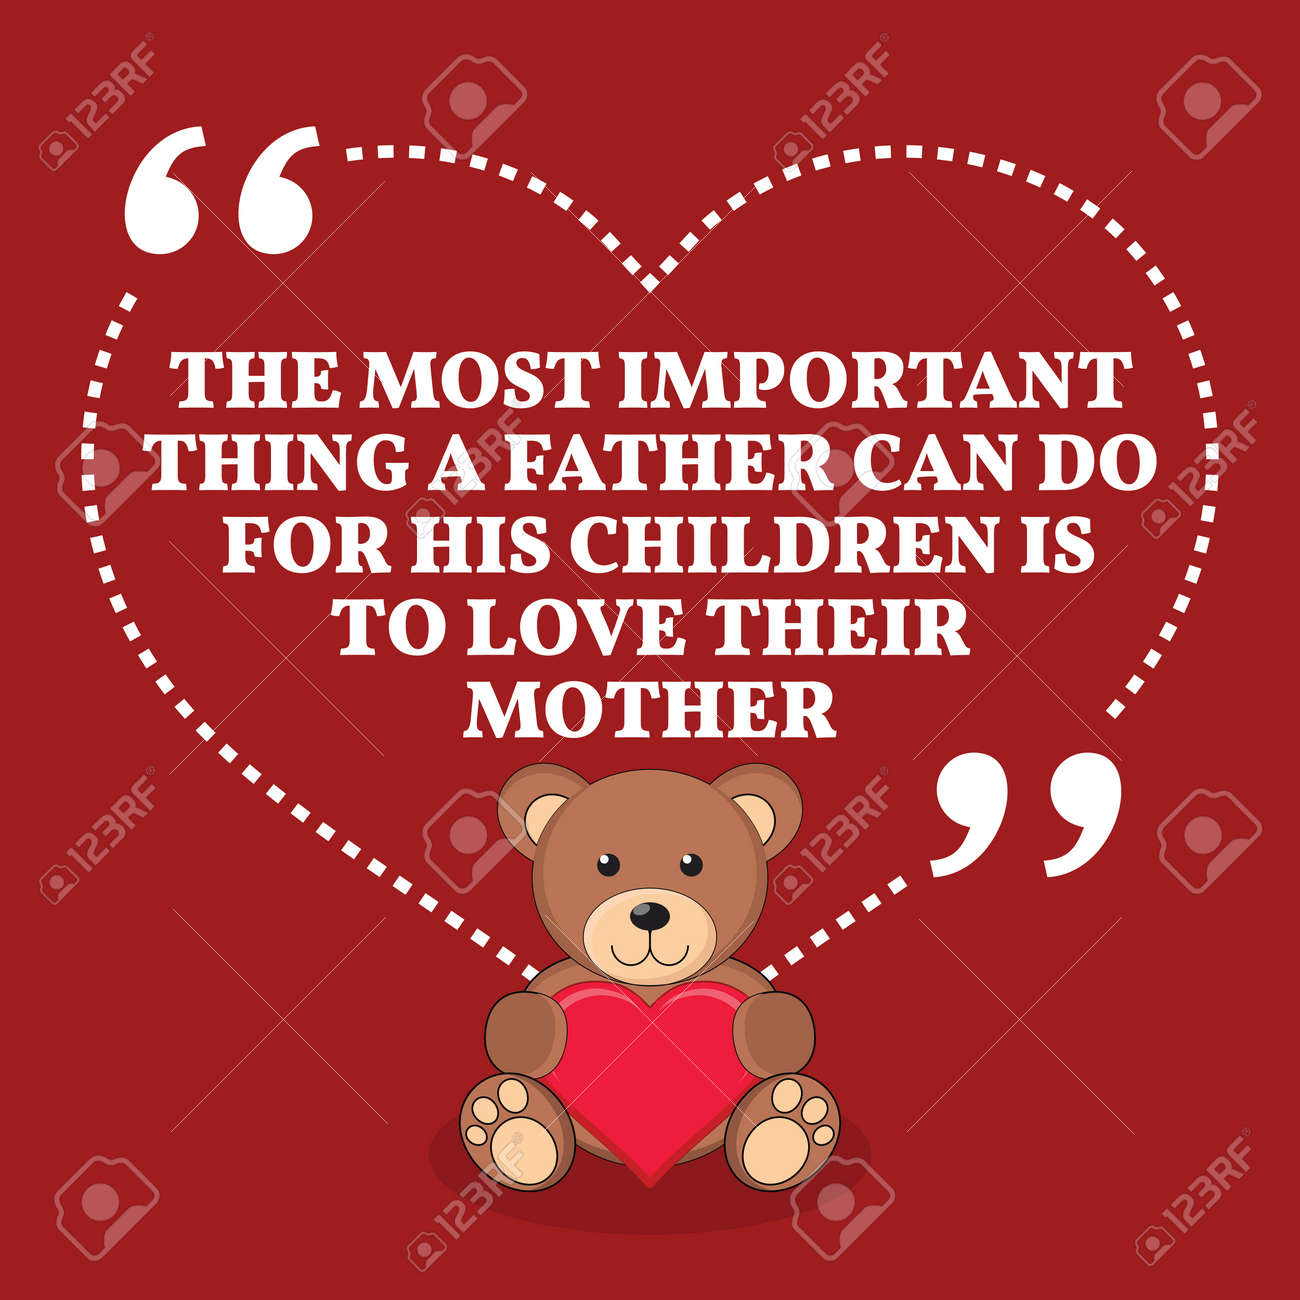 Inspirational Quotes About Loving Children Inspirational Love Marriage Quotetye Most Important Thing A